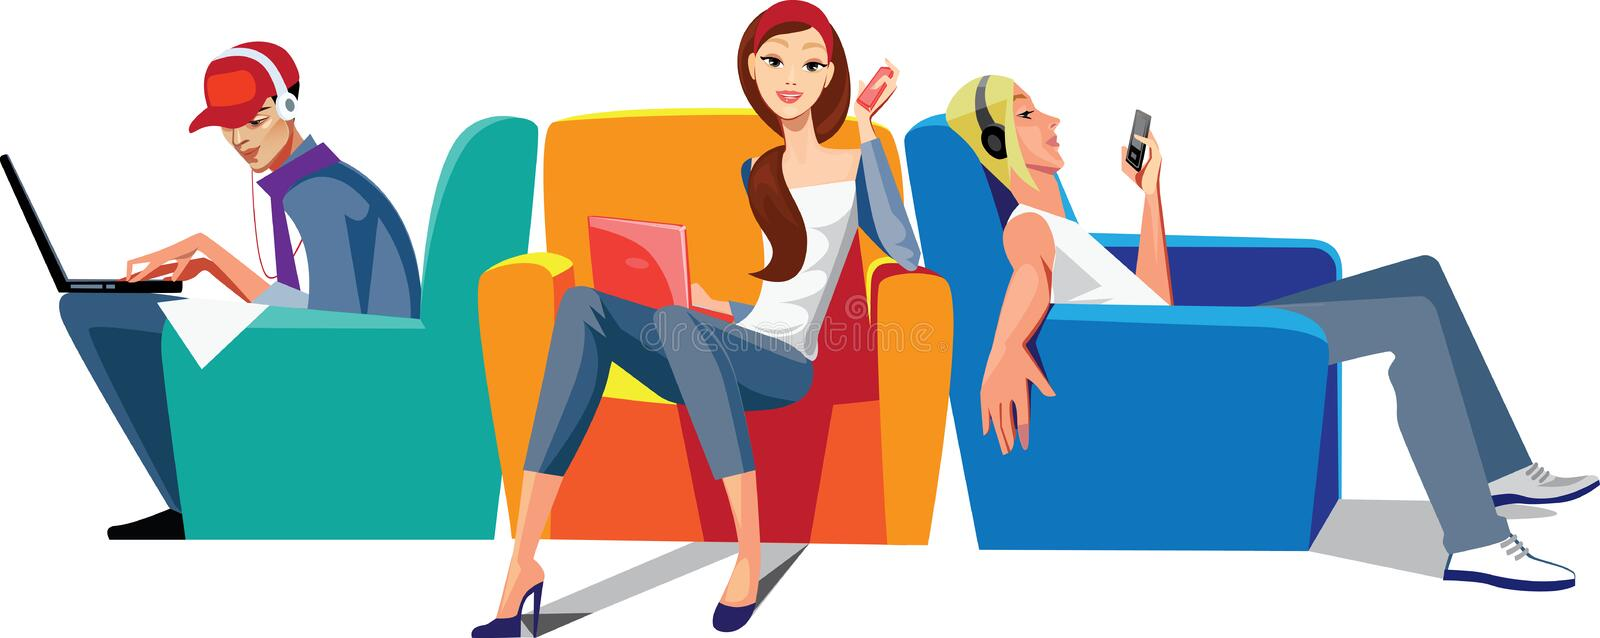 Download Wi-fi zone stock vector. Illustration of teen, sitting - 22783937